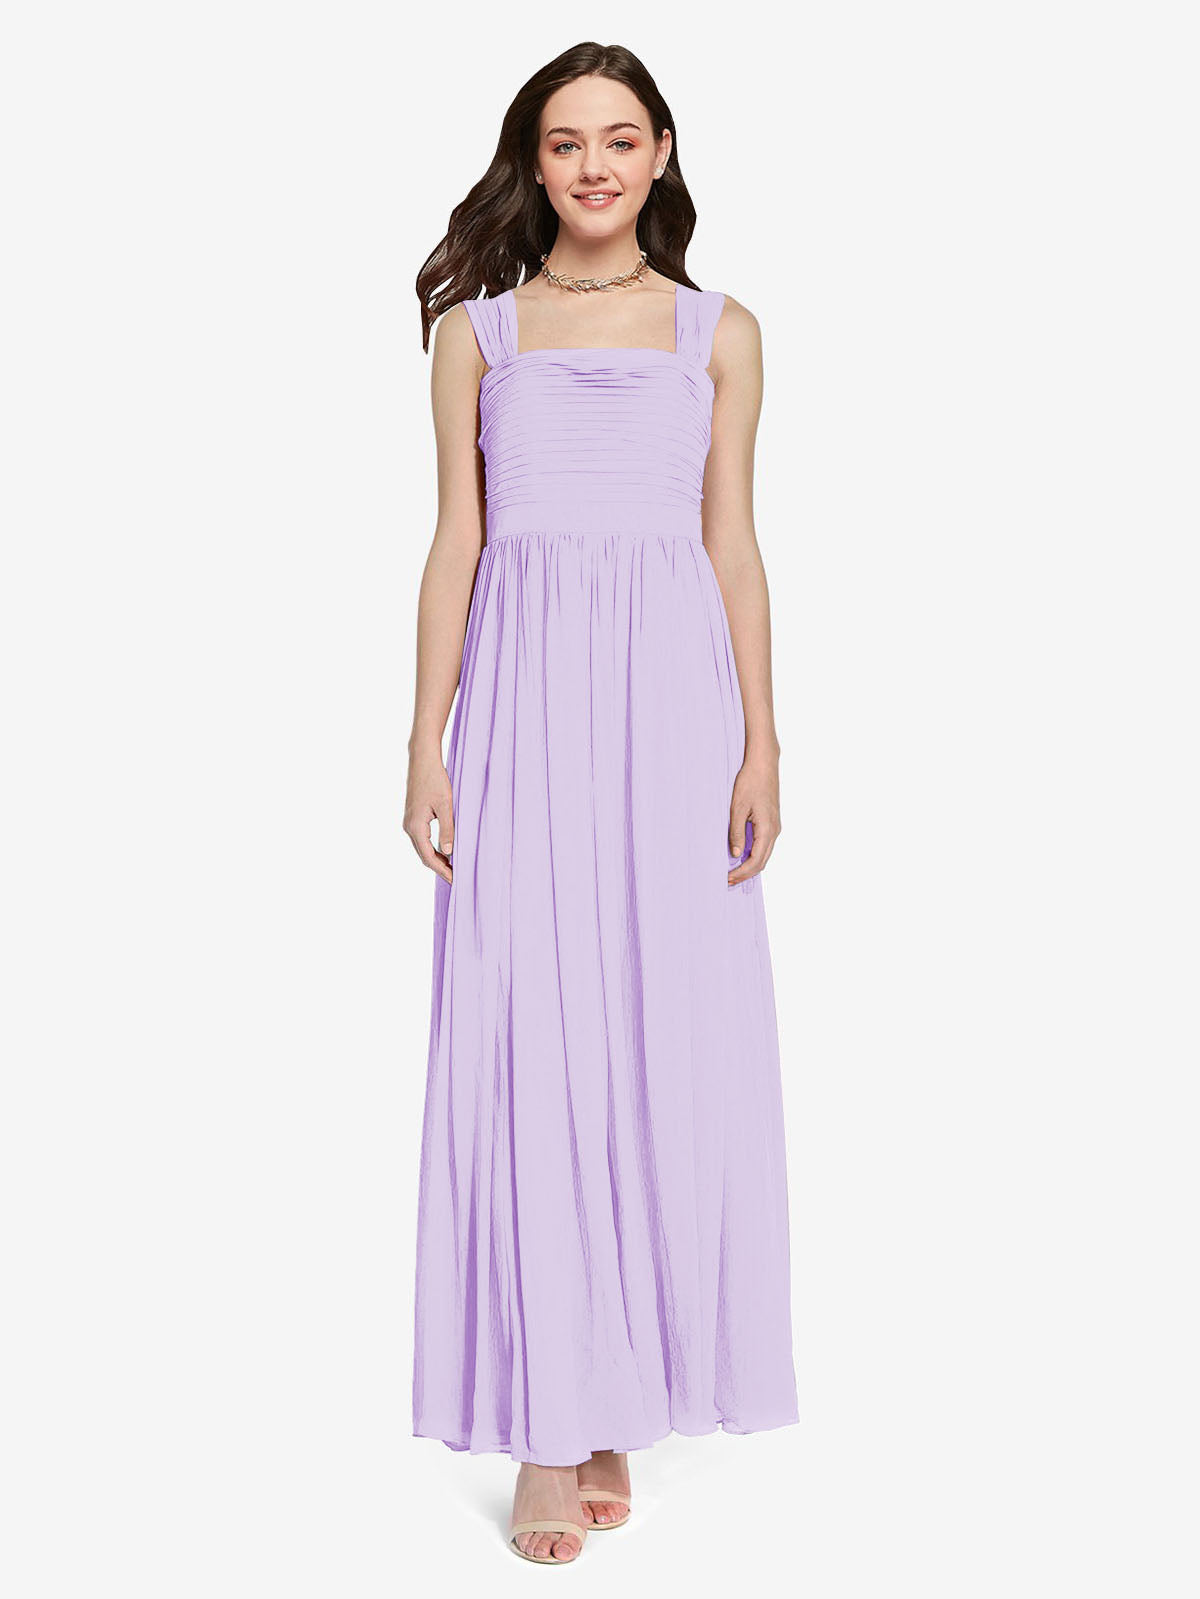 Long A-Line Square Sleeveless Lilac Chiffon Bridesmaid Dress Aldridge